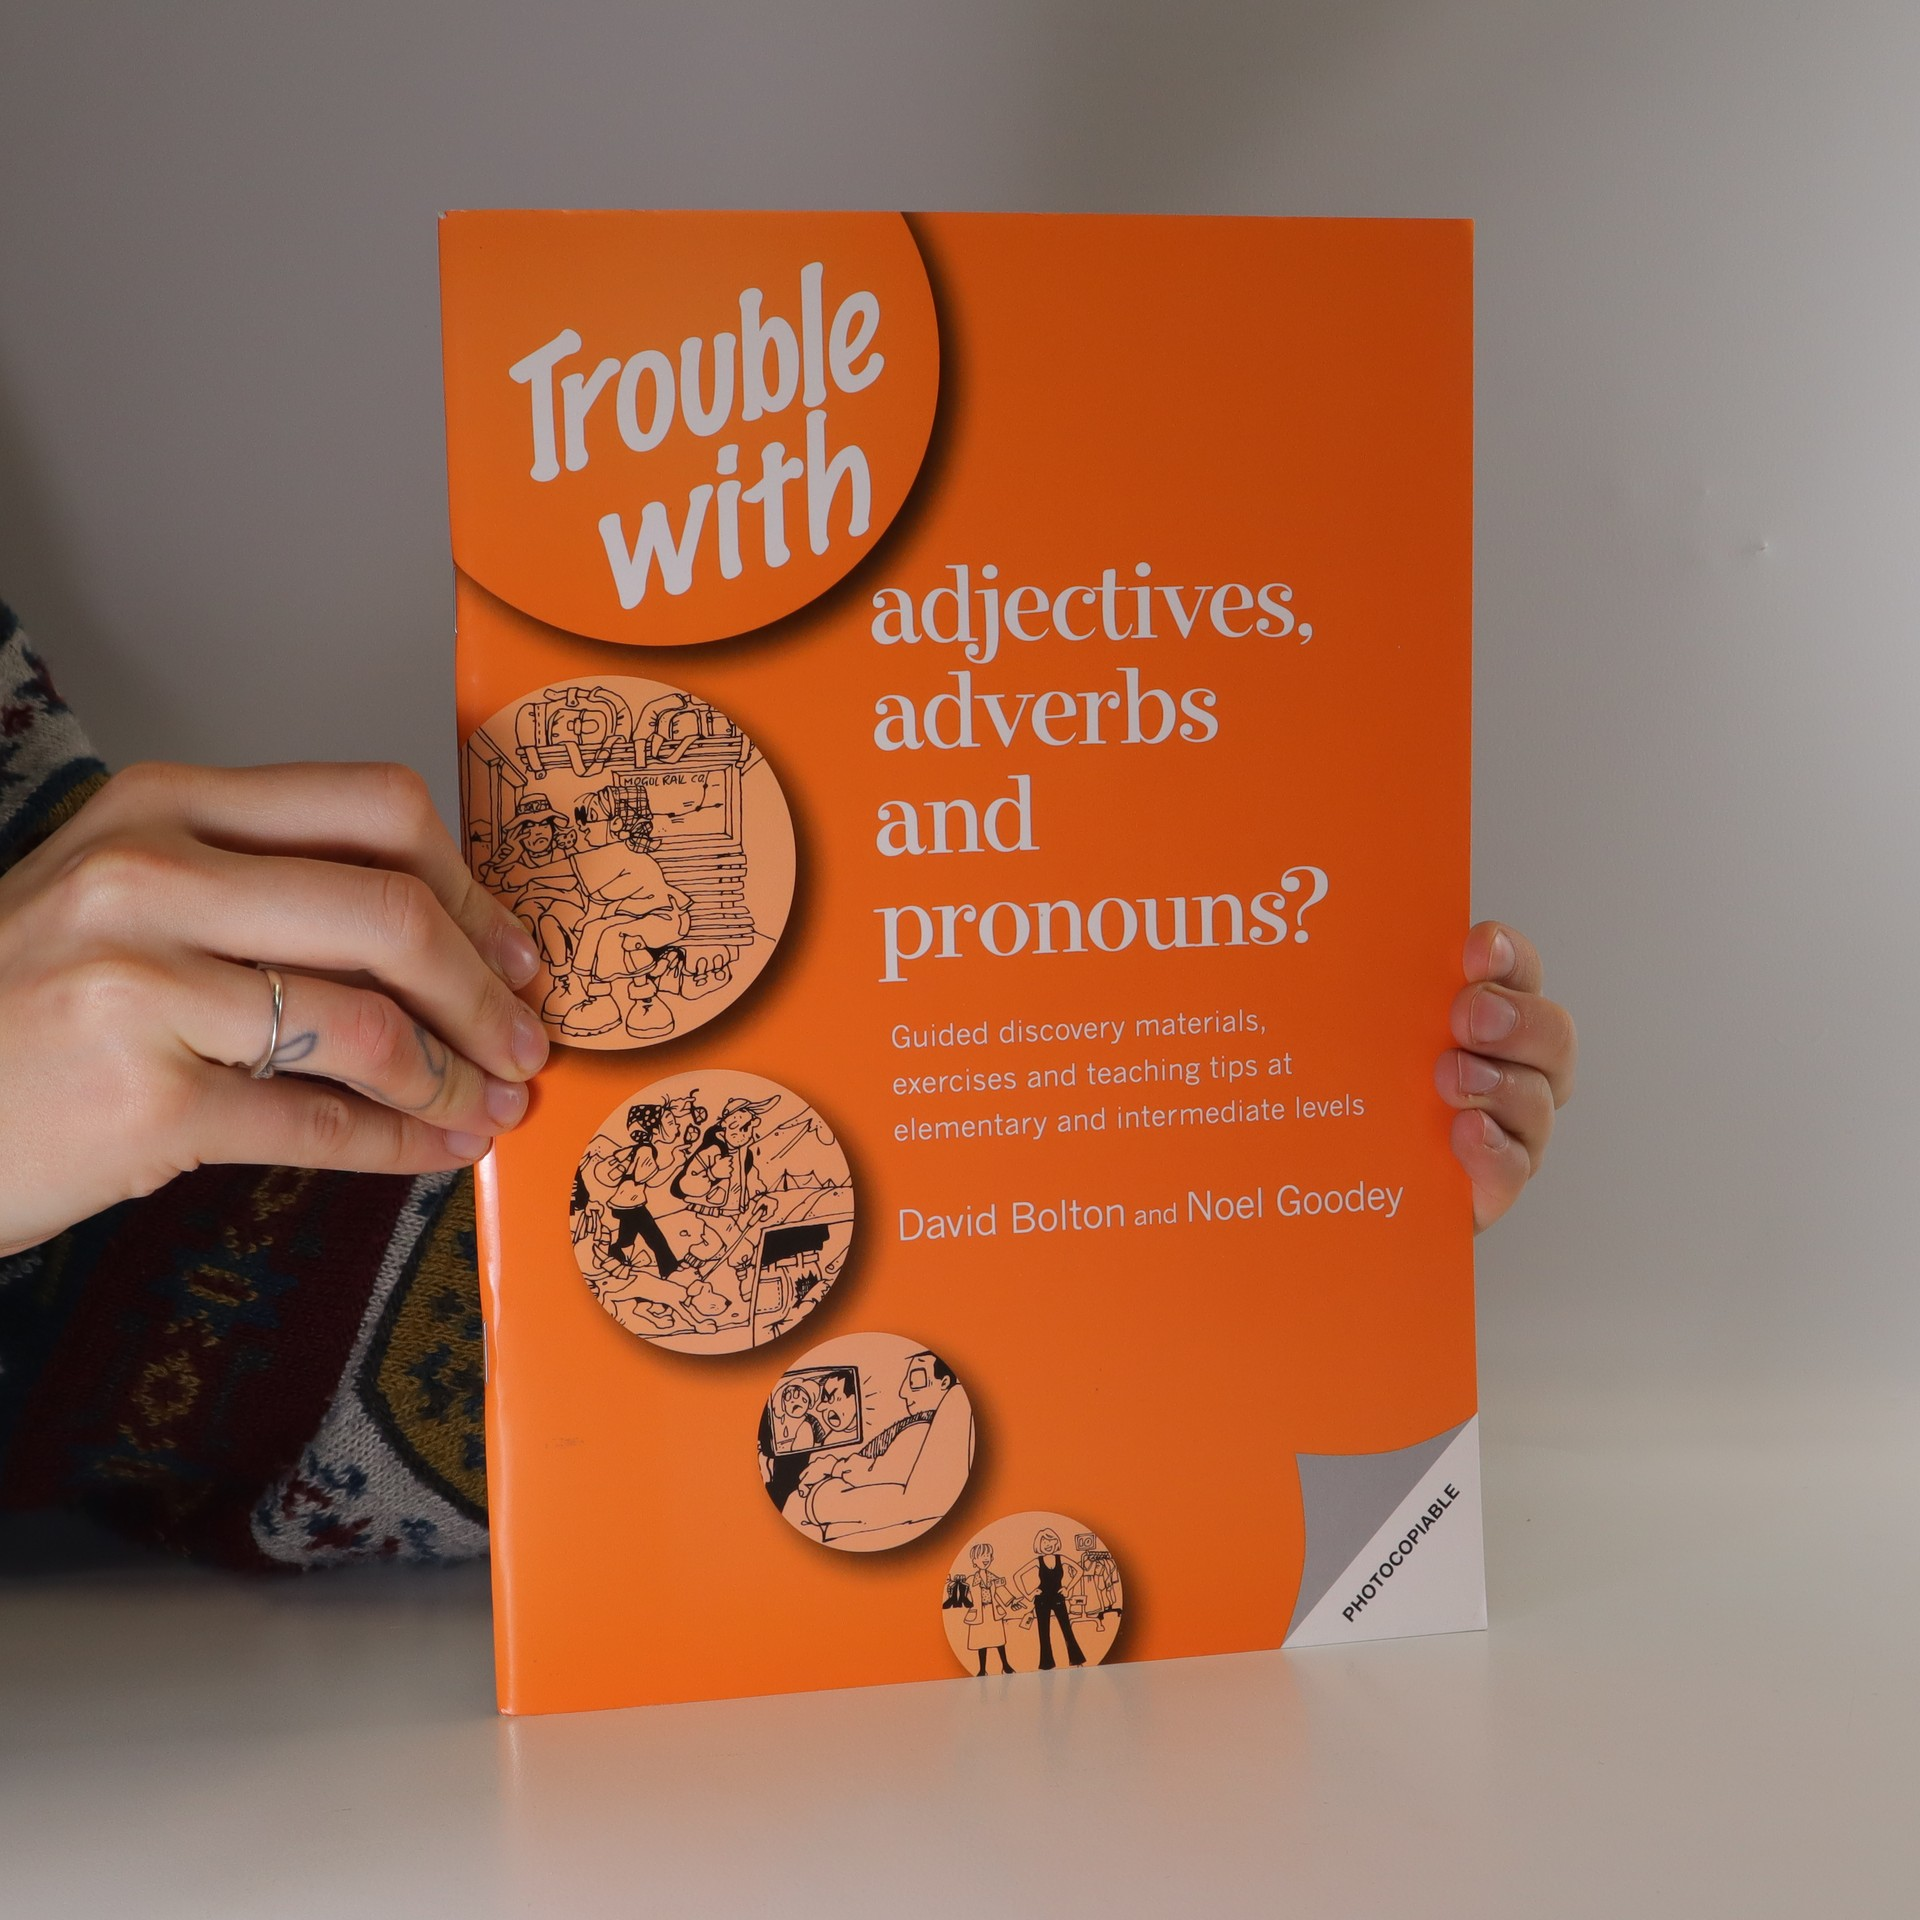 antikvární kniha Trouble with adjectives, adverbs and pronouns?, 2000